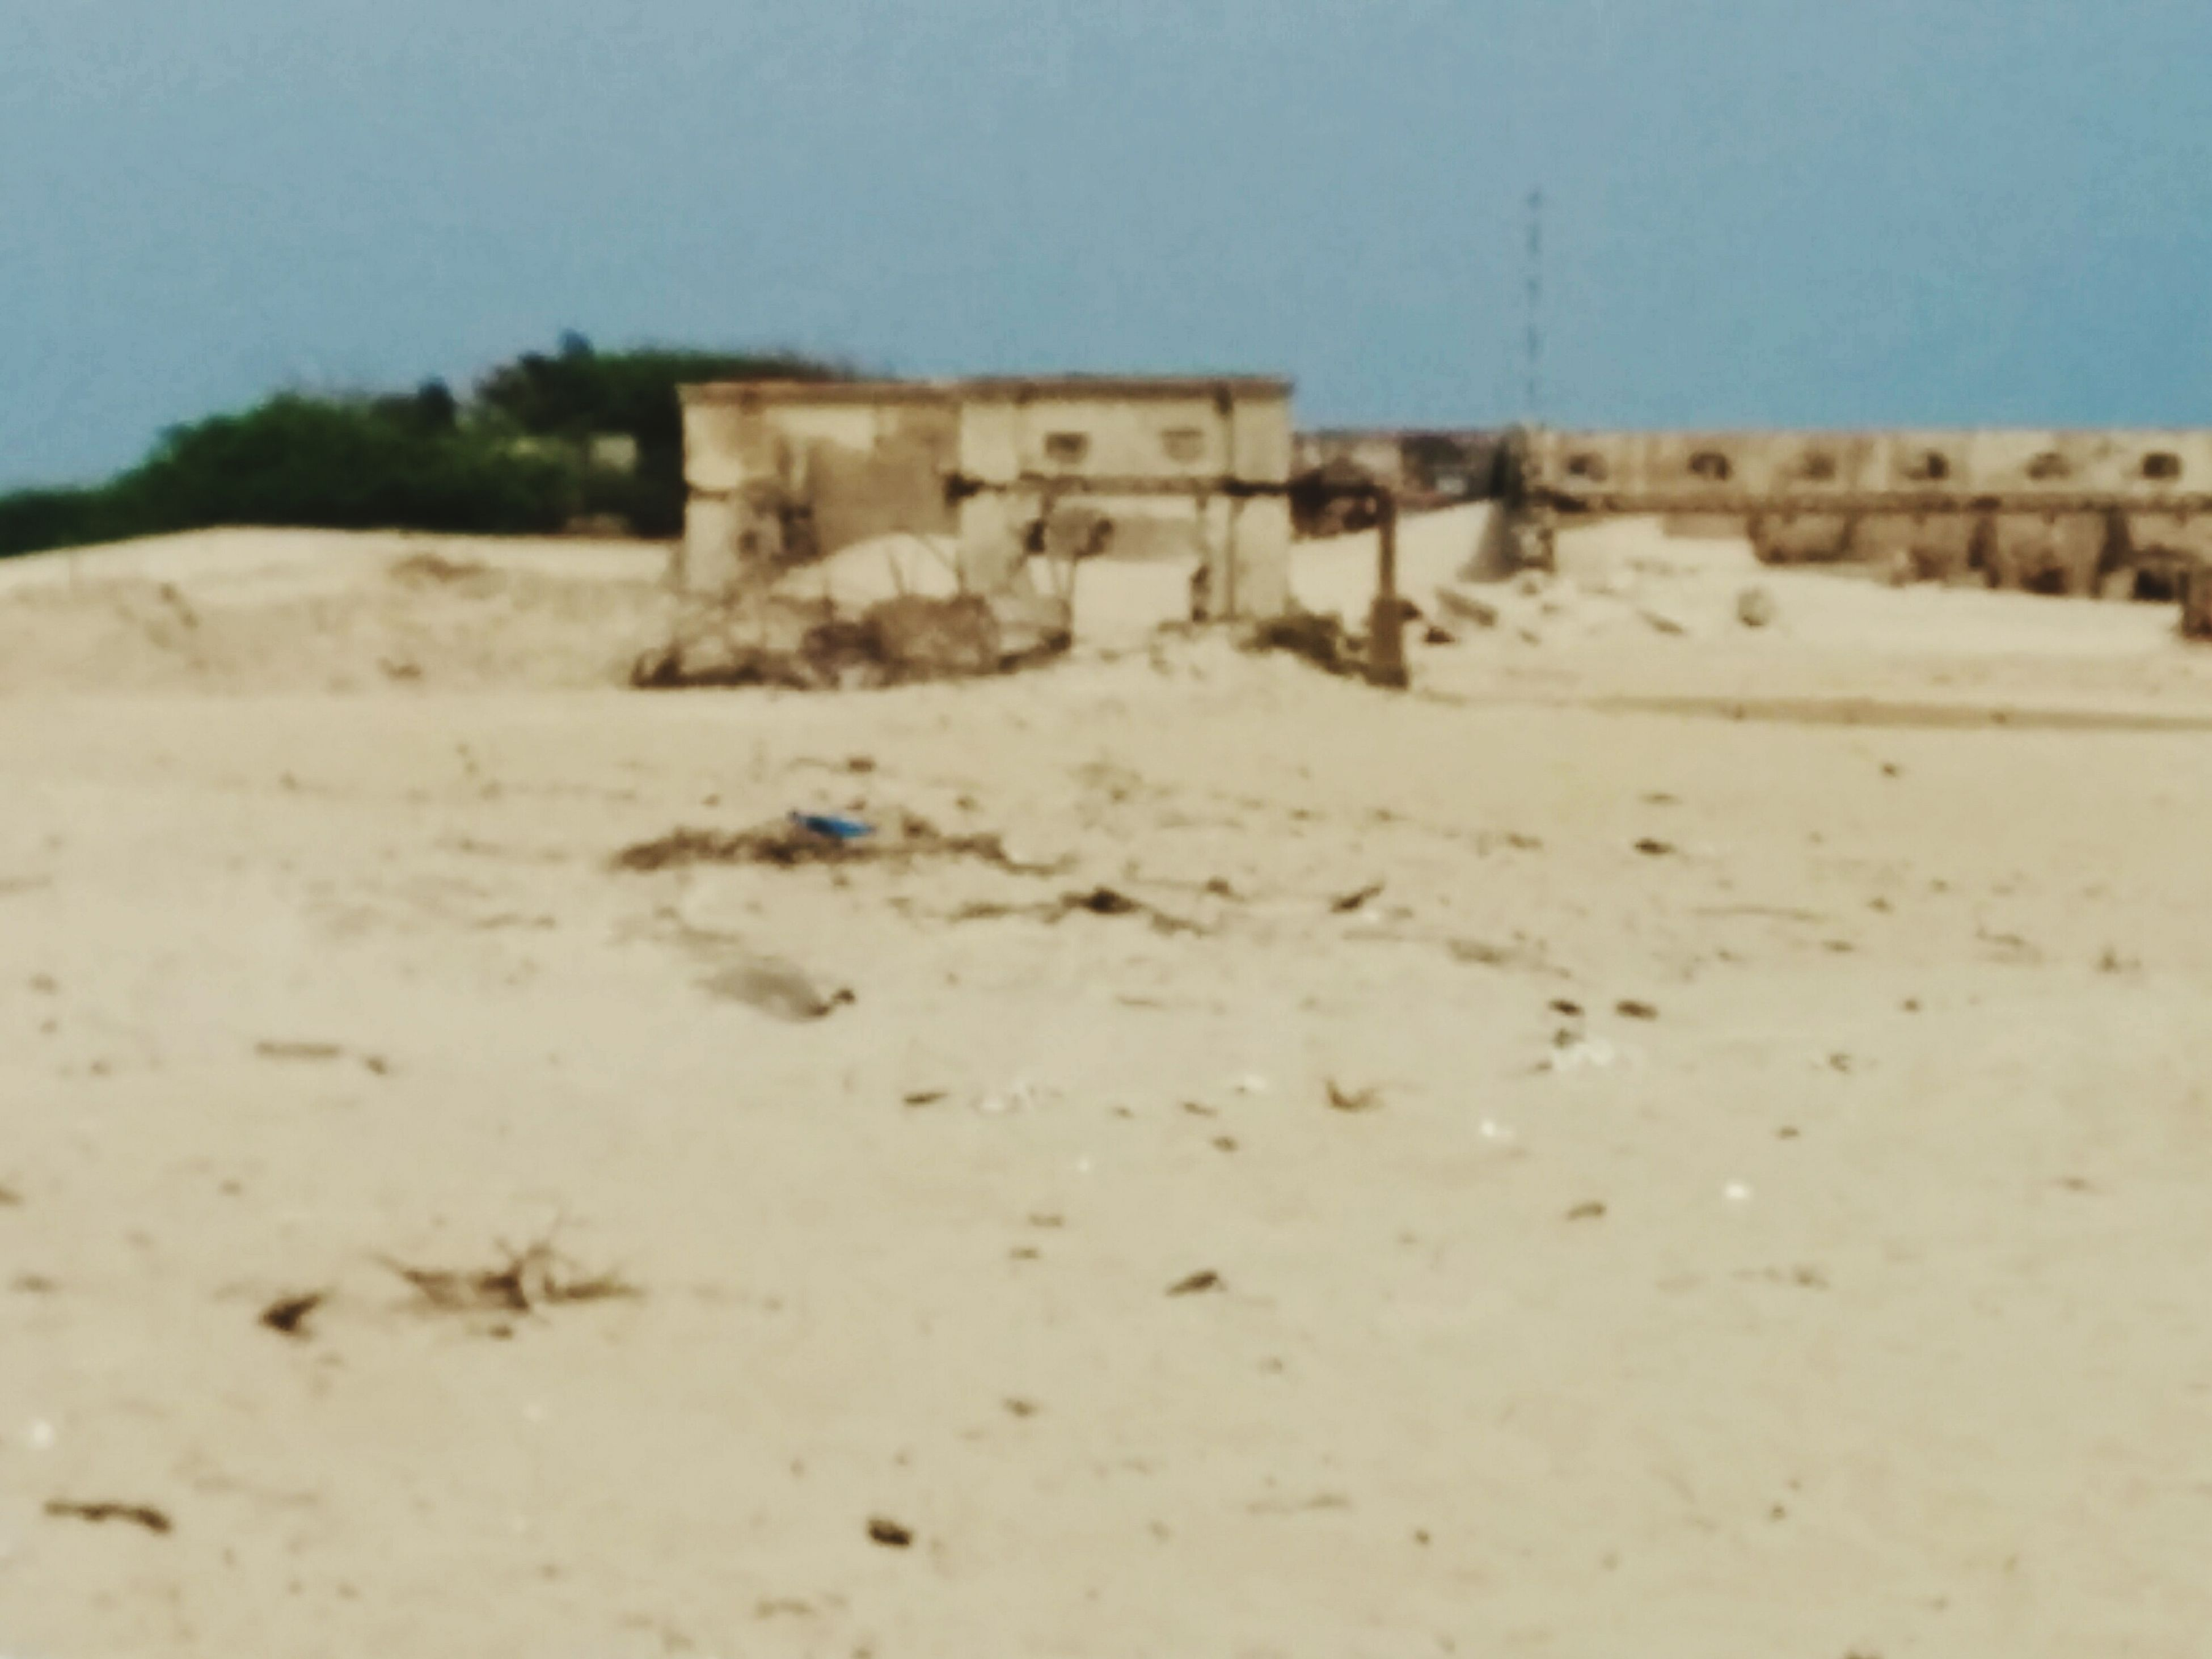 built structure, no people, sand, landscape, architecture, abandoned, nature, outdoors, building exterior, day, sky, beach, desolate